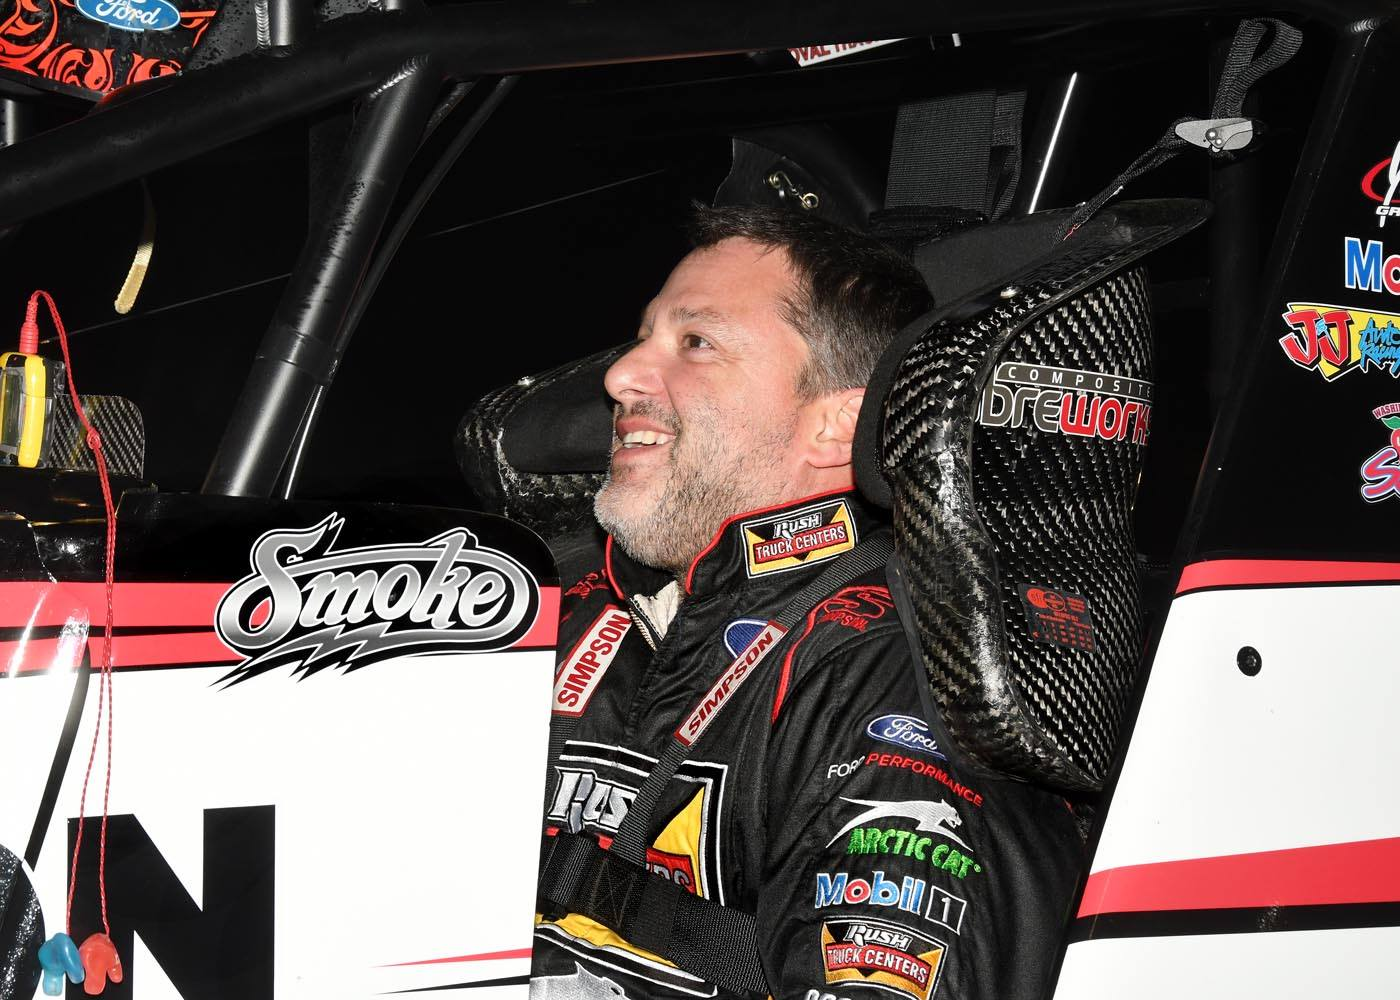 Tony Stewart - Dirt sprint car racing